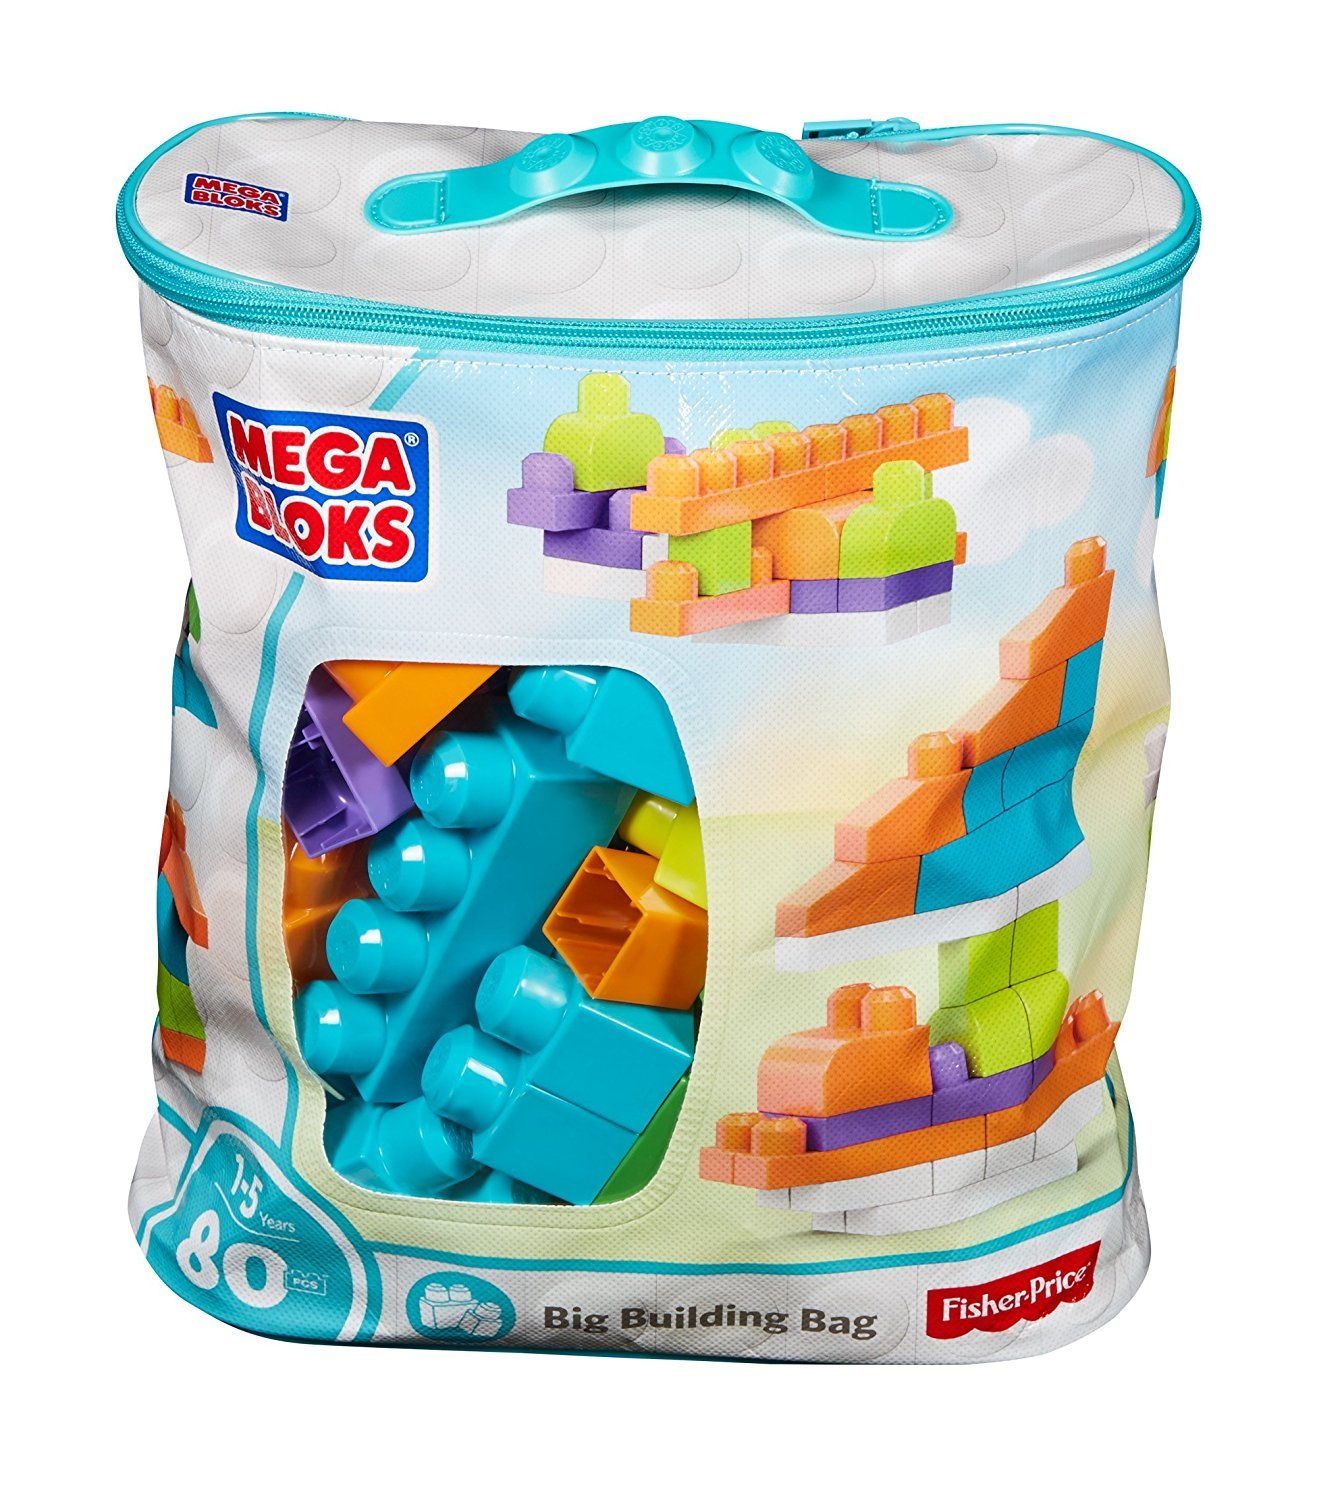 Best easter gifts for toddler amazon mega bloks big building bag trendy 80 piece negle Choice Image